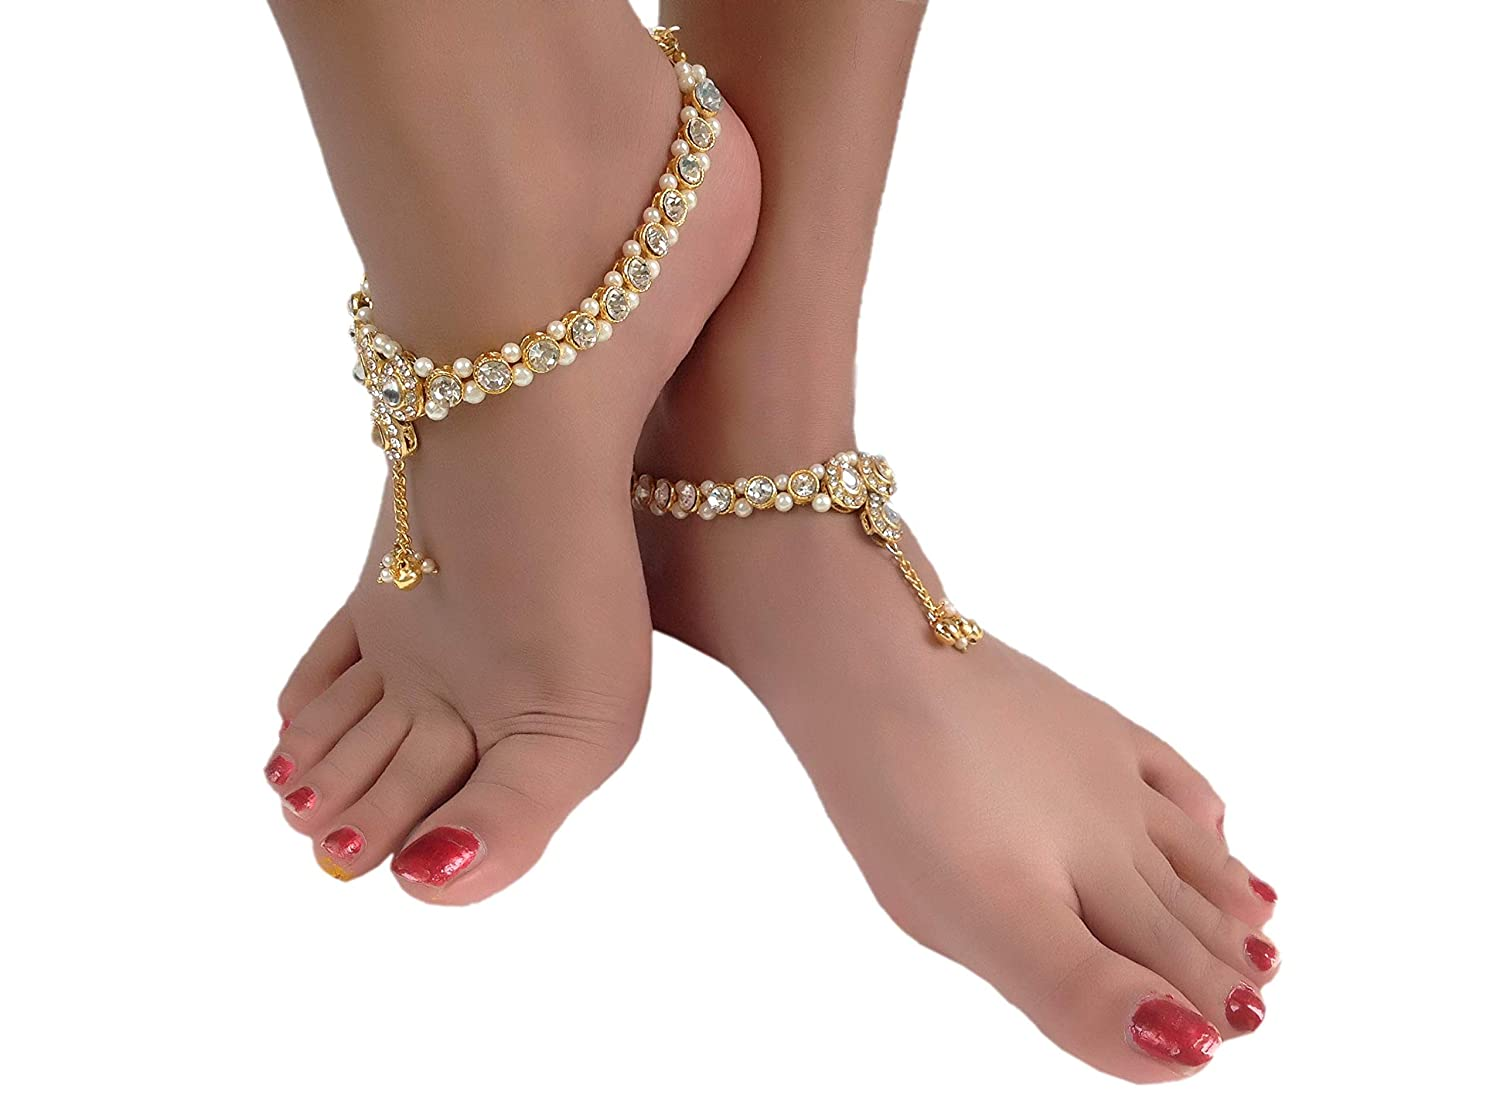 8a7208190b59ba Buy Womensky Antique Traditional Kundan Pearls Stone Fancy Gold Plated Payal /Anklet/Pajeb/Payjeb/Painjan/Ghungroo/Anklet Bracelet/Pattilu for Women and  ...